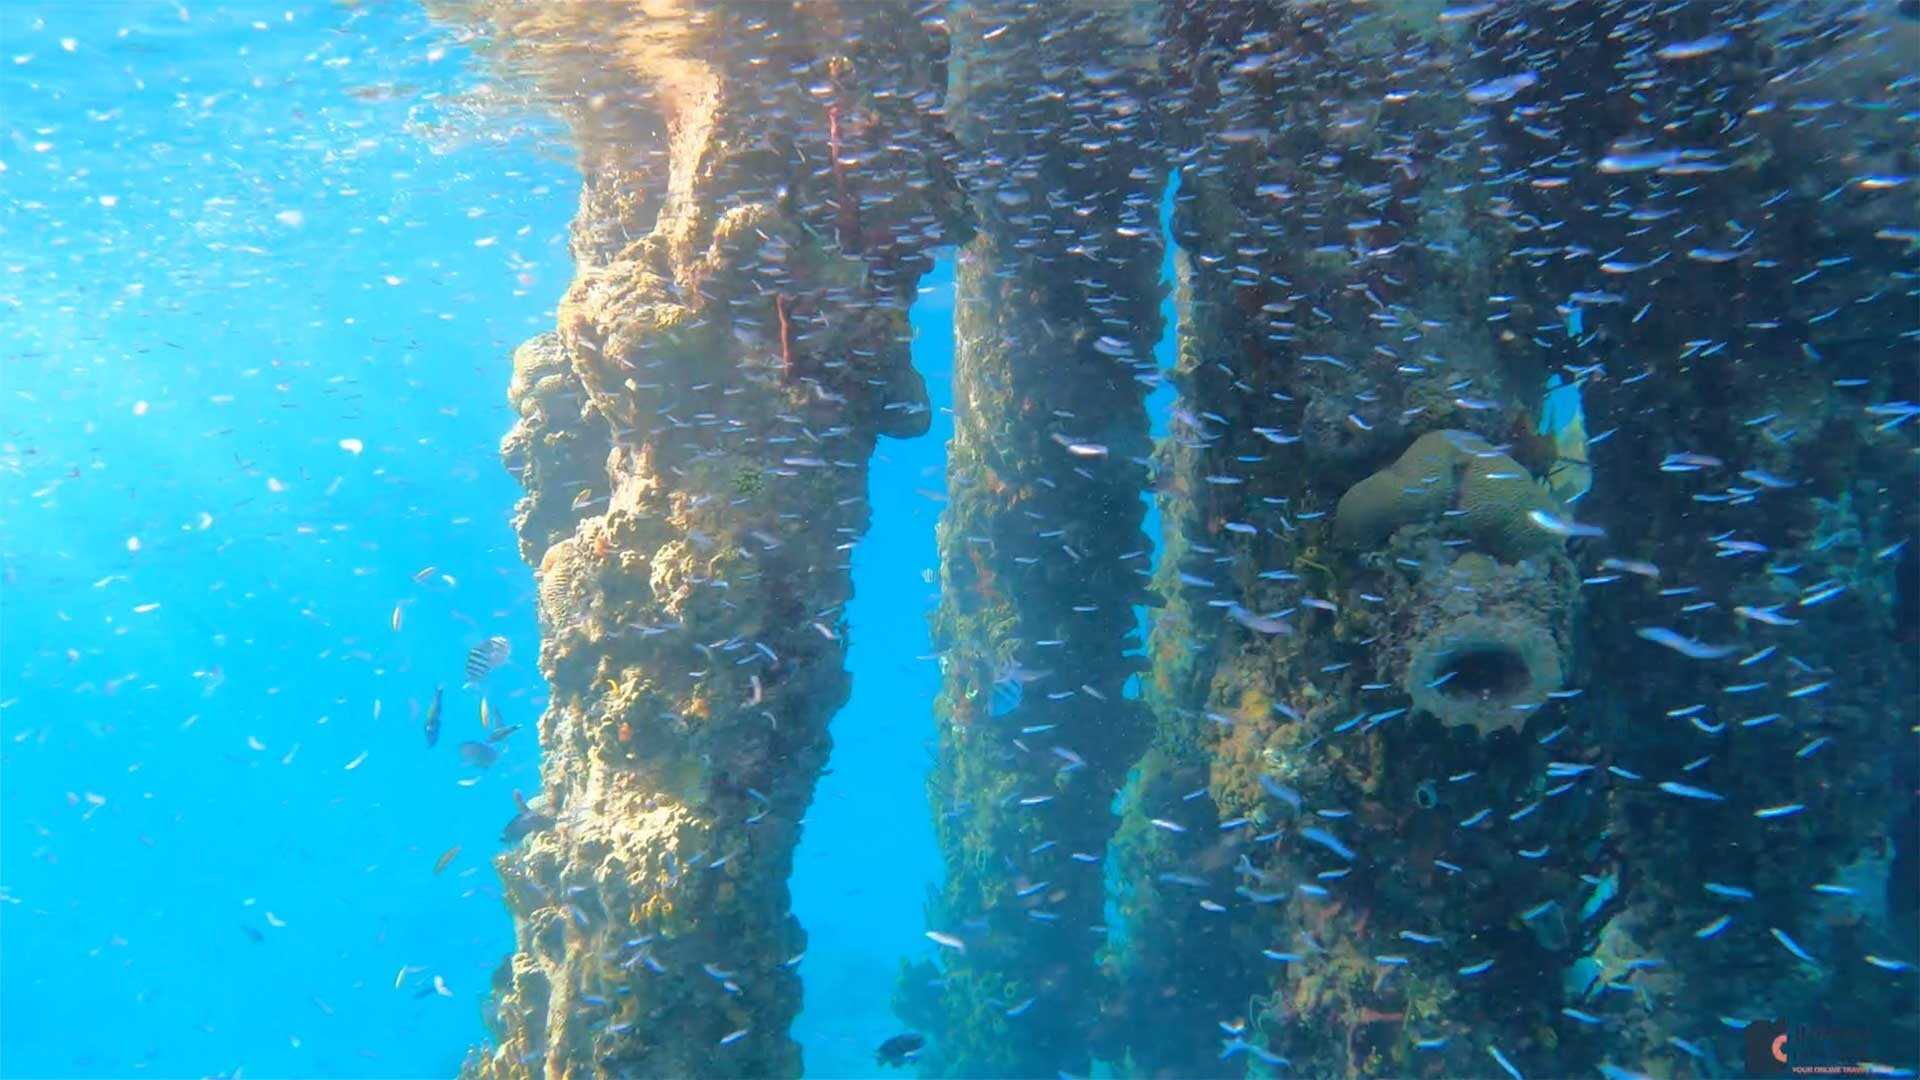 Underwater view of the Frederiksted Pier in St. Croix